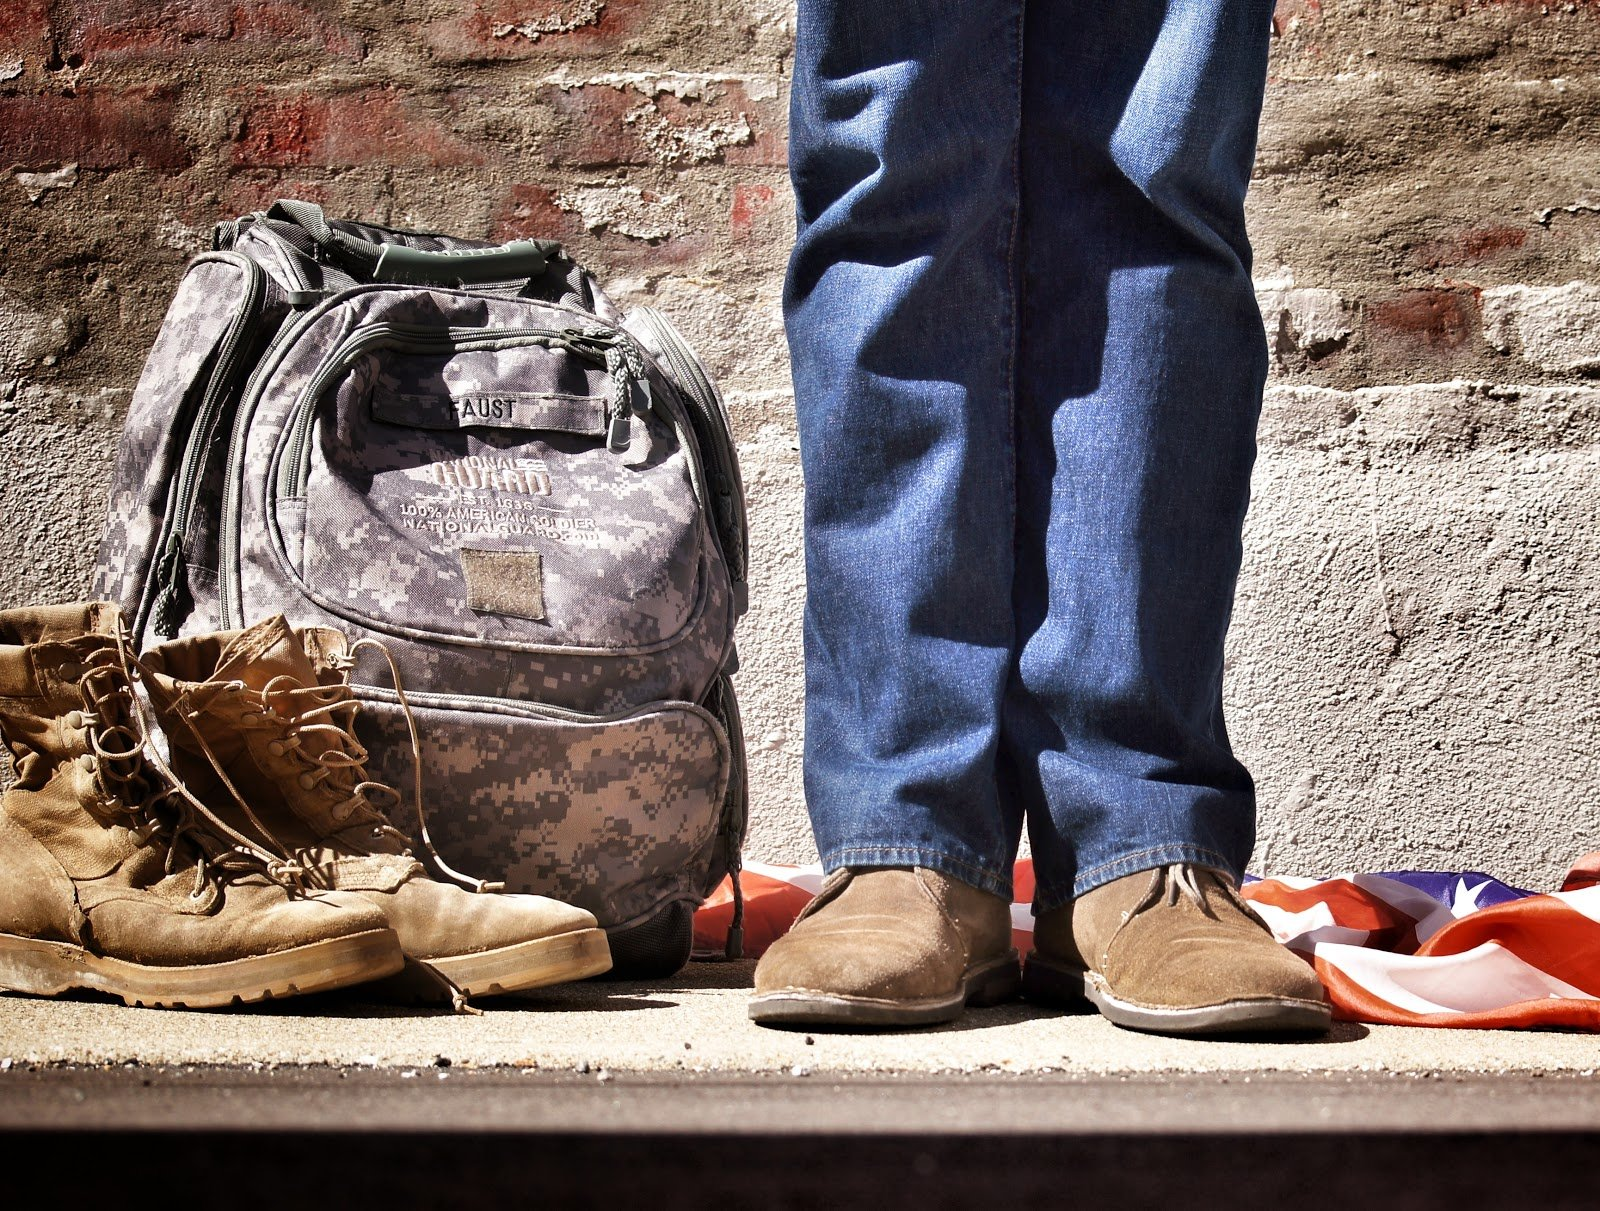 veteran standing next to boots and backpack